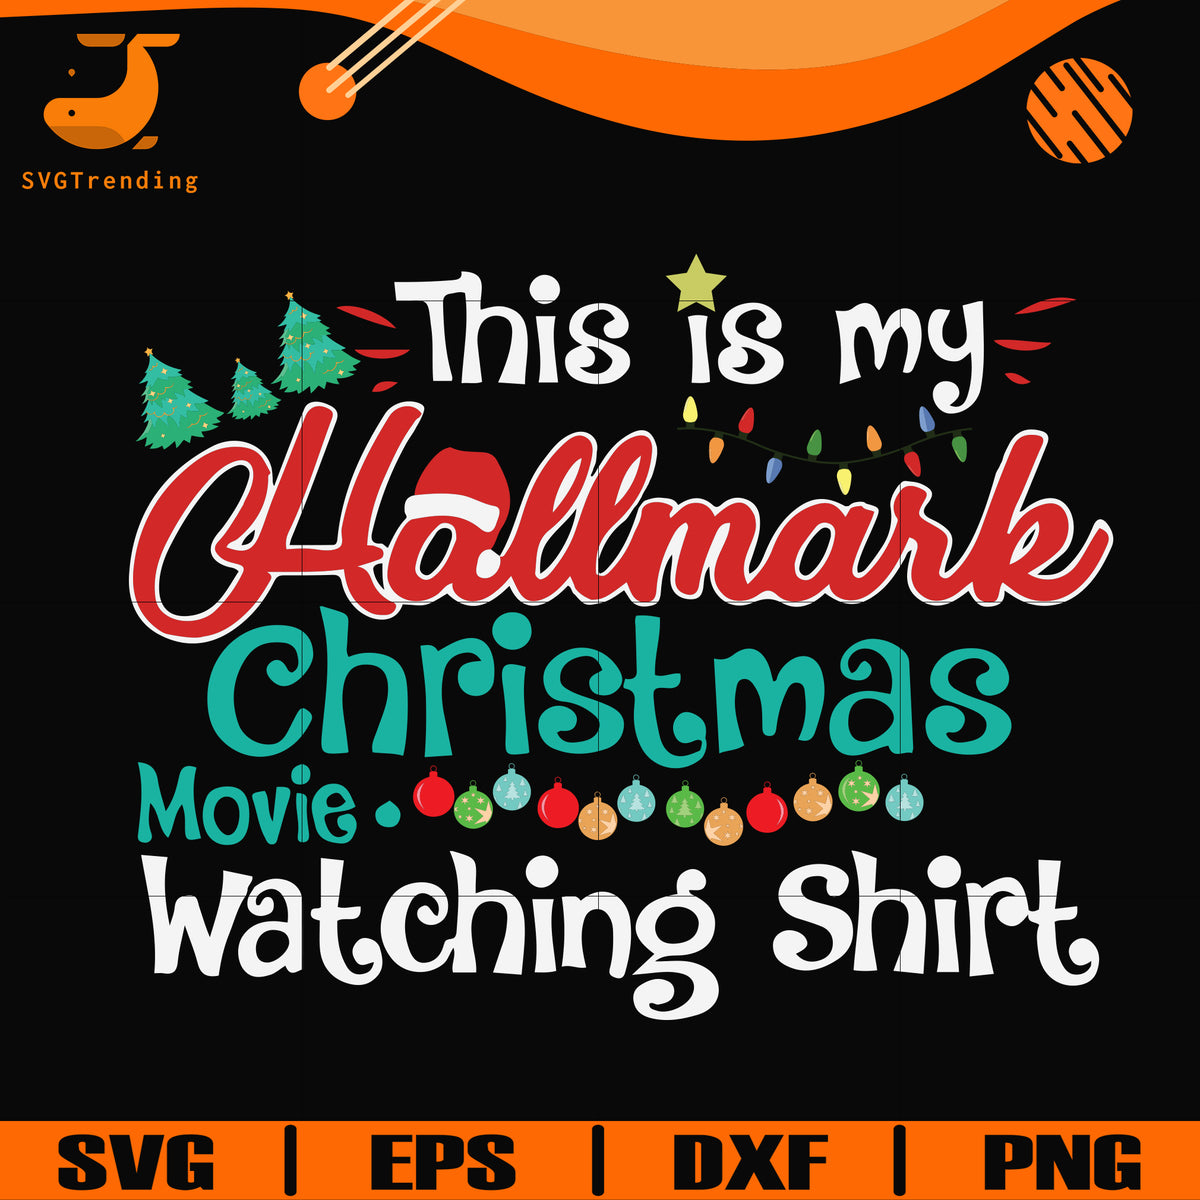 This Is My Hallmark Christmas Movies Watching Shirt Svg Png Dxf Eps Svgtrending